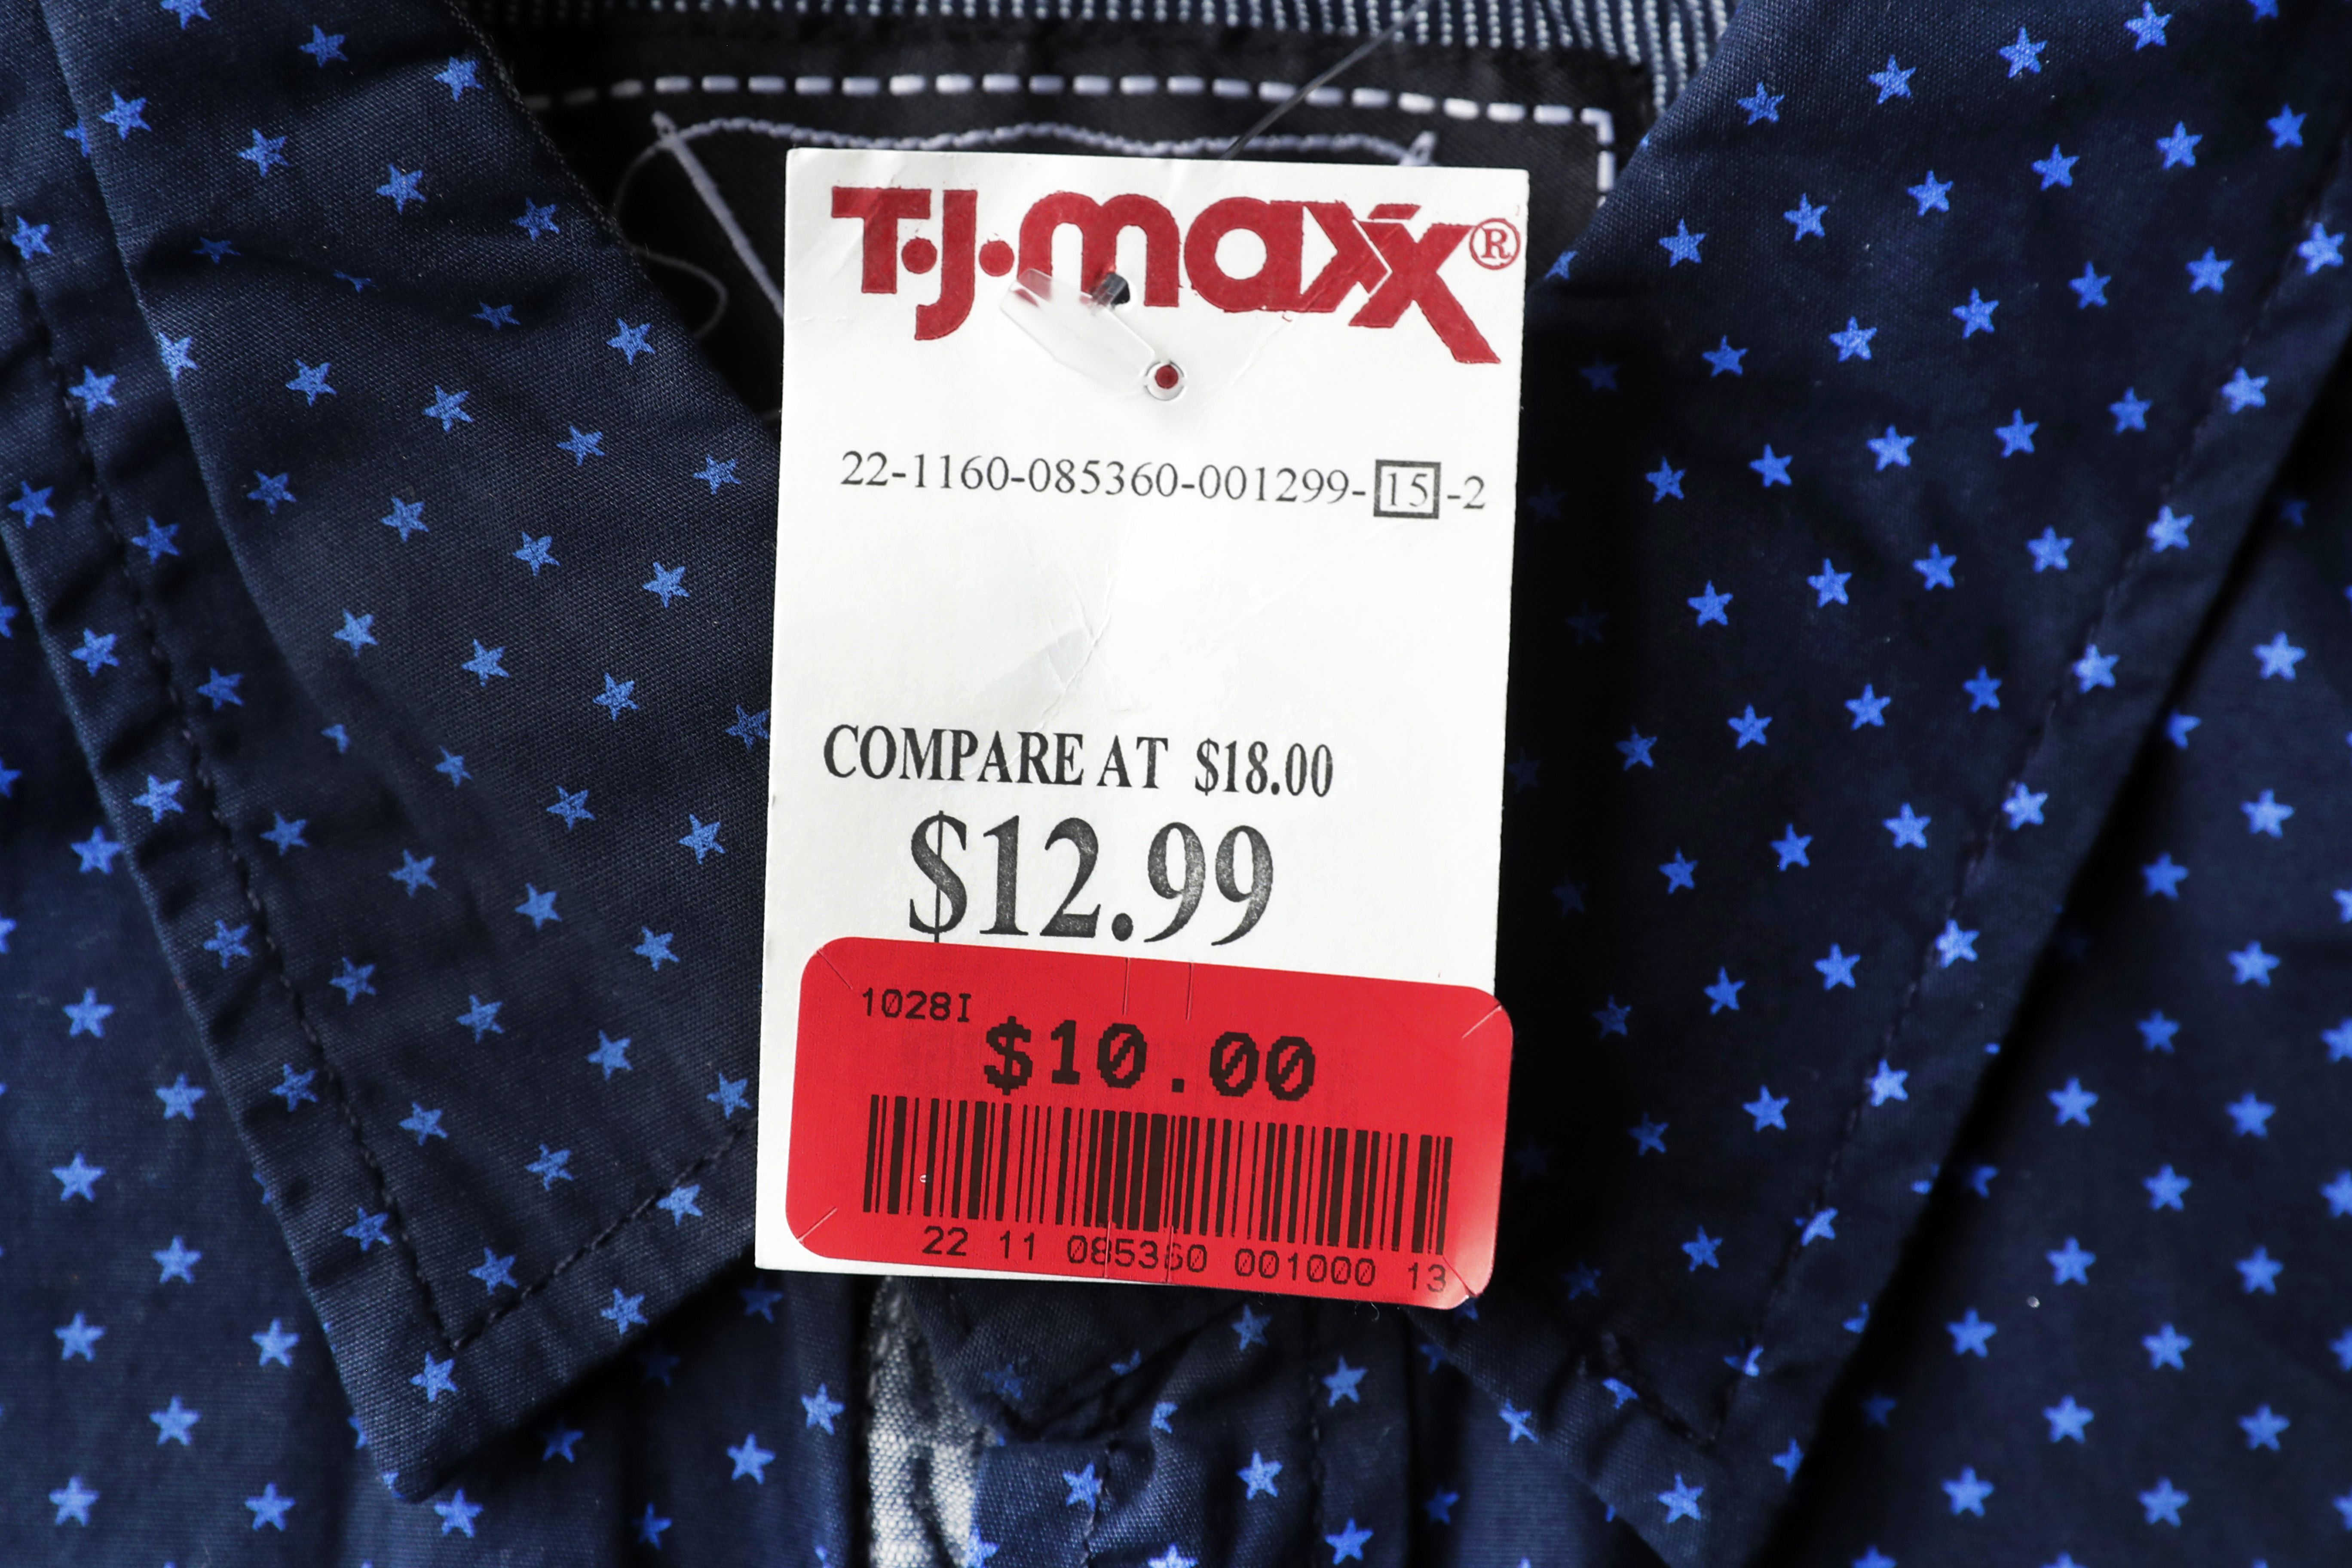 Consumer Prices This Tuesday, May 16, 2017, photo shows a T.J. Maxx store price tag on a shirt, in Des Moines, Iowa. The cost of clothing, auto insurance and health care rose in August 2017, according to consumer price information released Thursday, Sept. 14, 2017, by the Labor Department. (AP Photo/Charlie Neibergall)